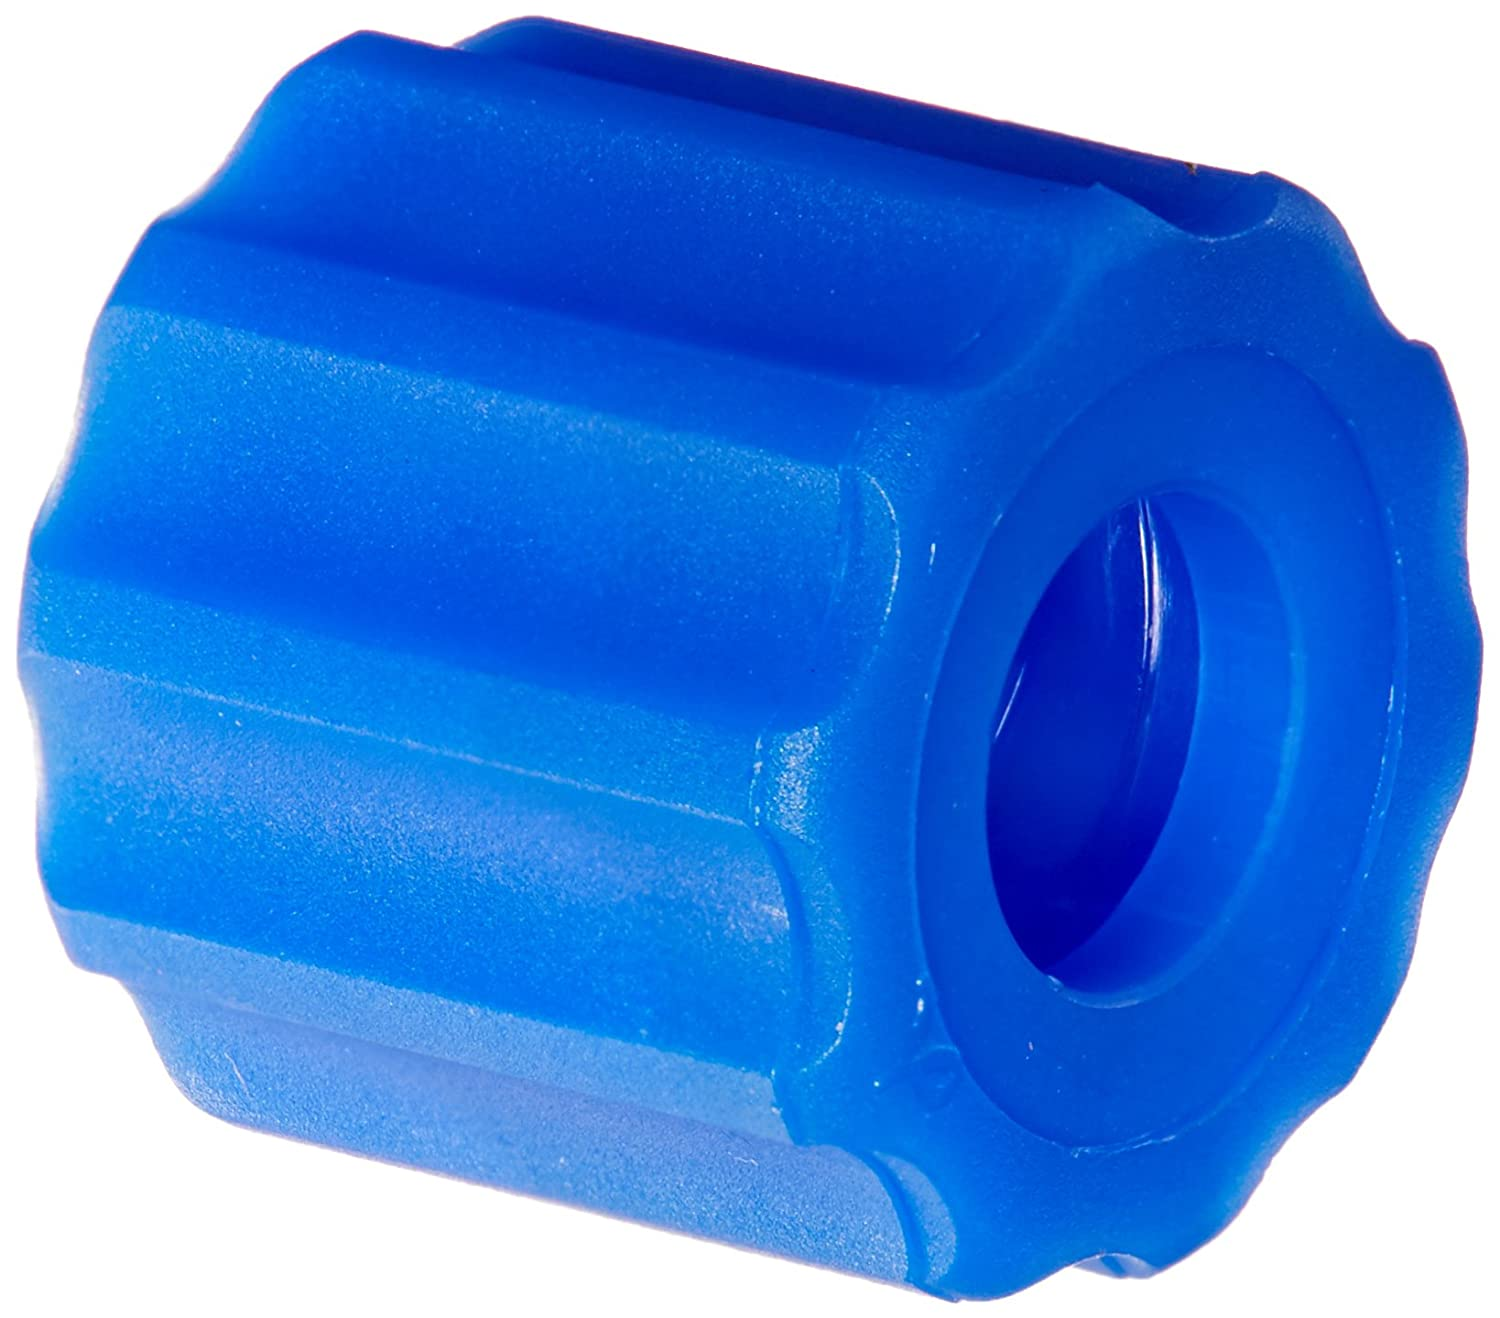 Blue Nylon For use with BDMMTL pack of  25 Value Plastic RMLLR-5 Rotating Male Luer Lock Ring